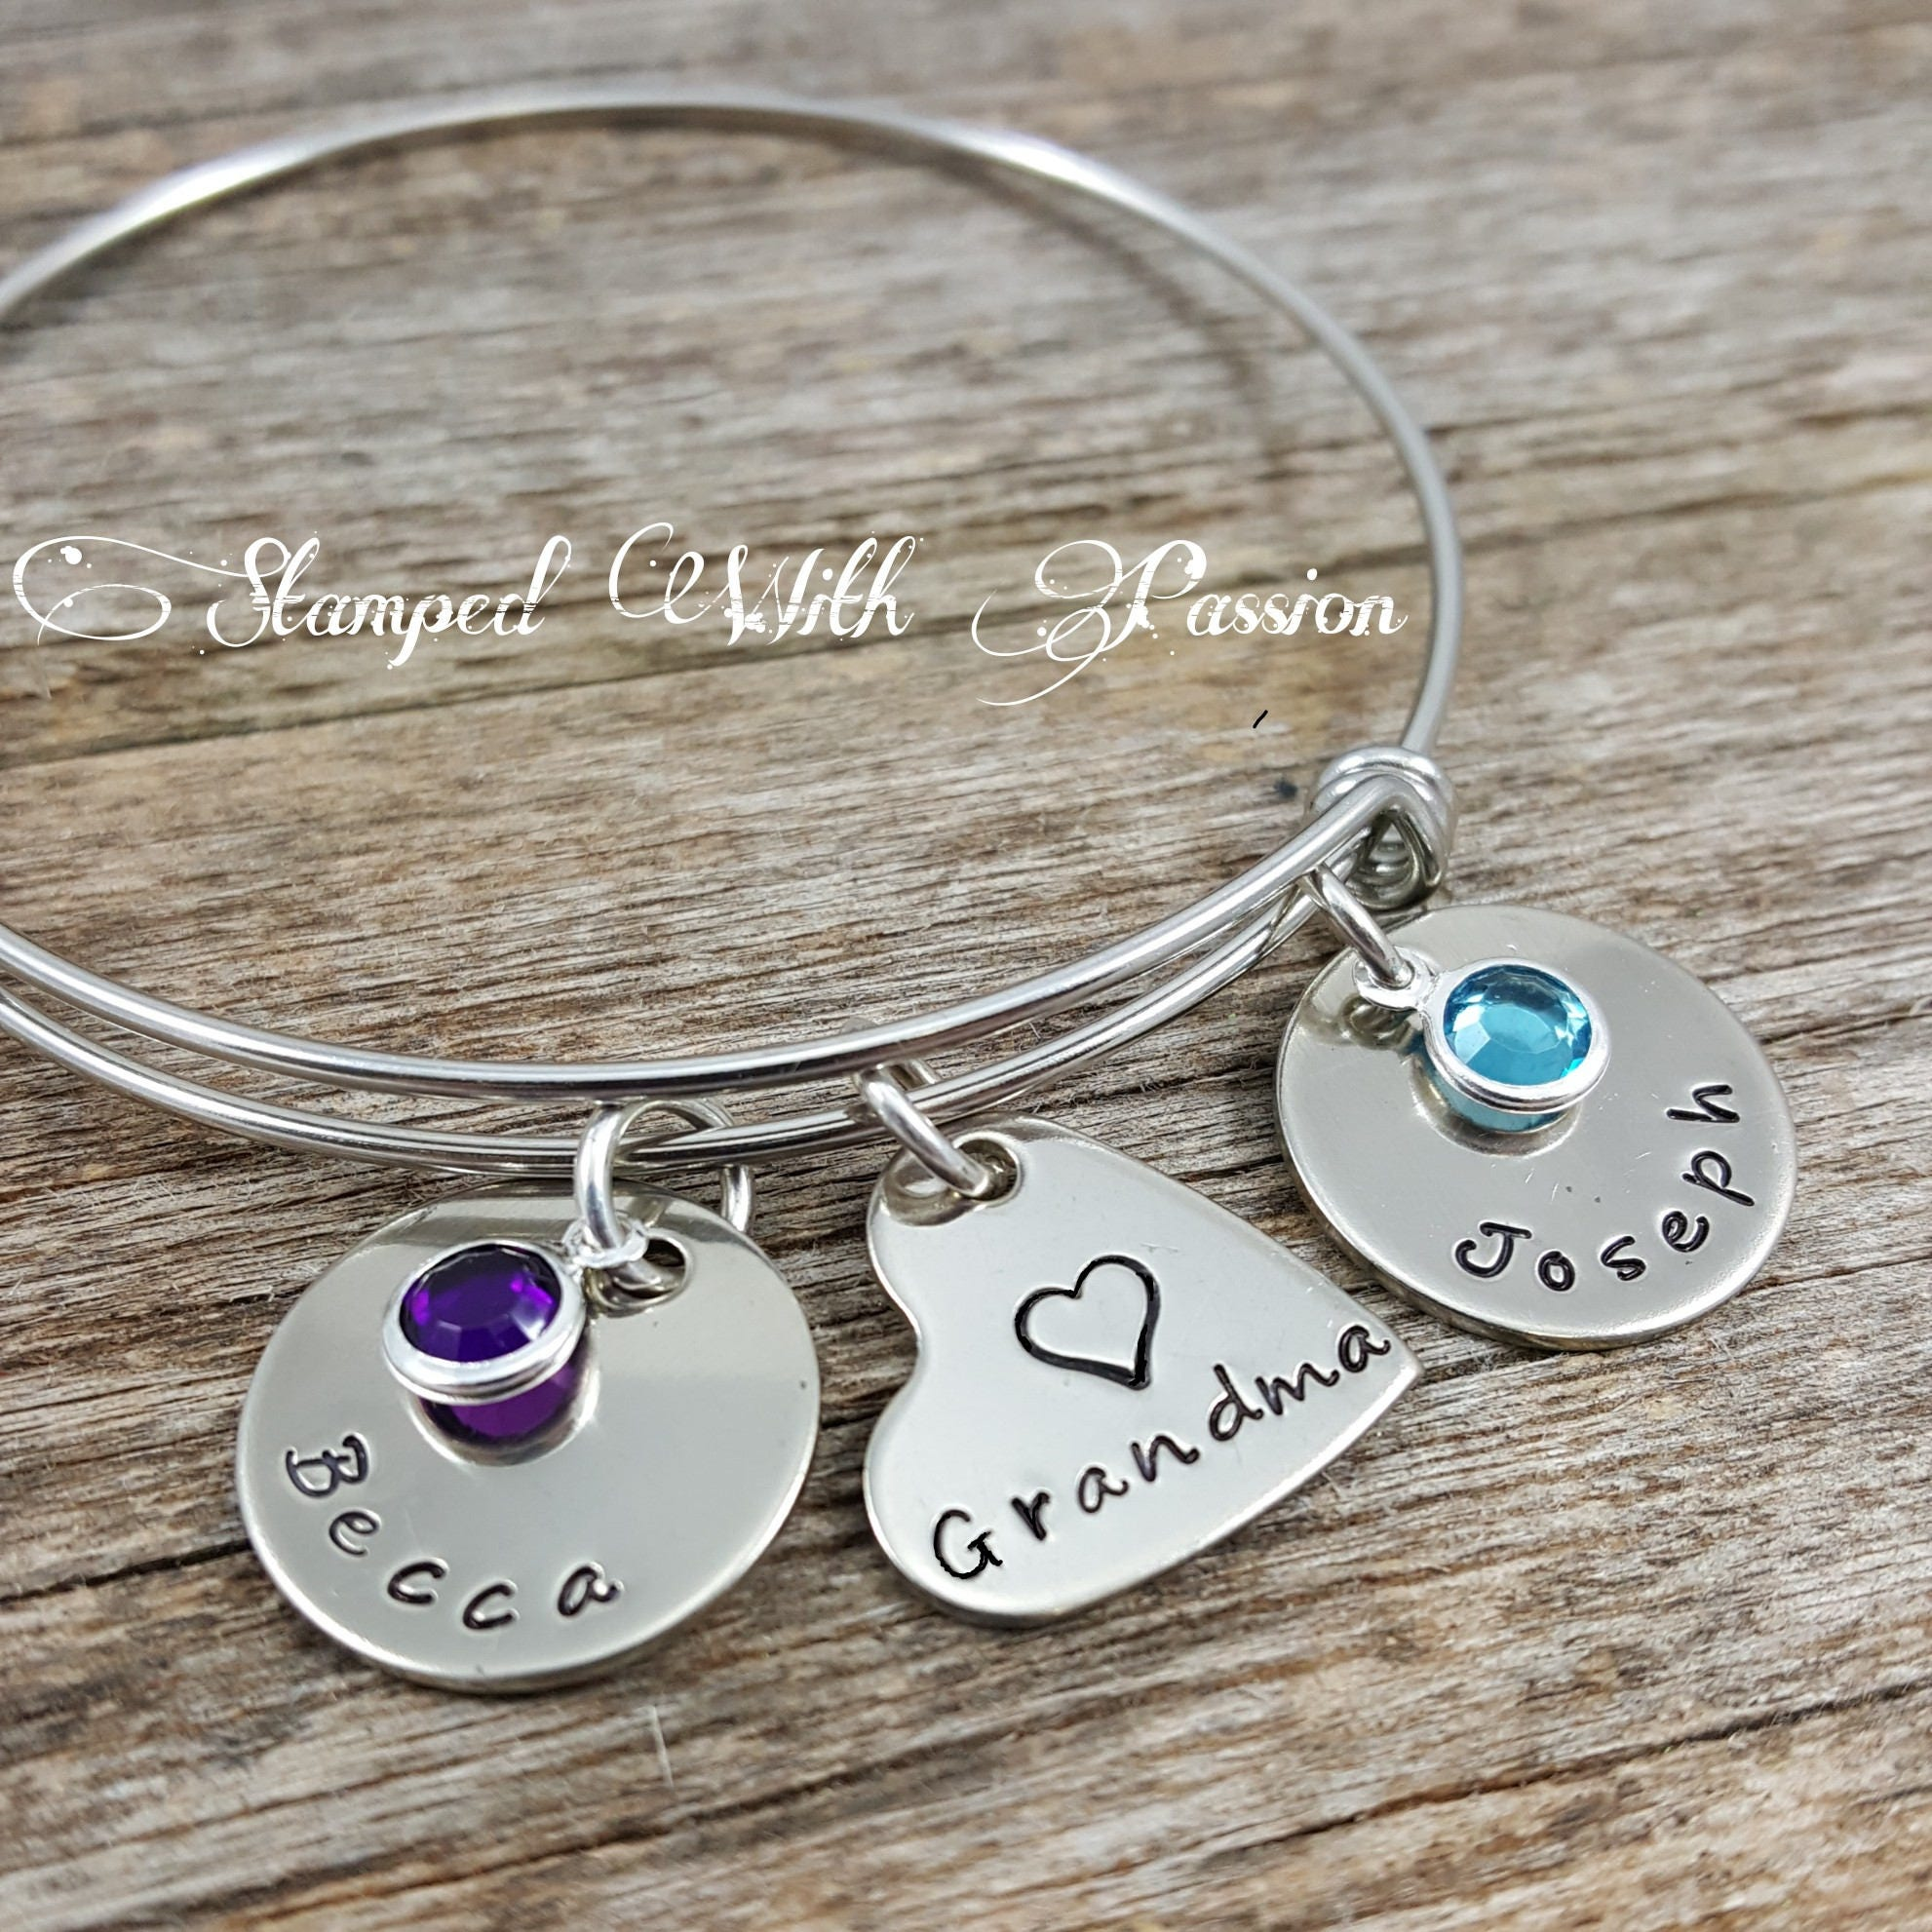 zoom bracelet pwaw childs personalized grandma name il gift nana child listing s fullxfull for grandchild